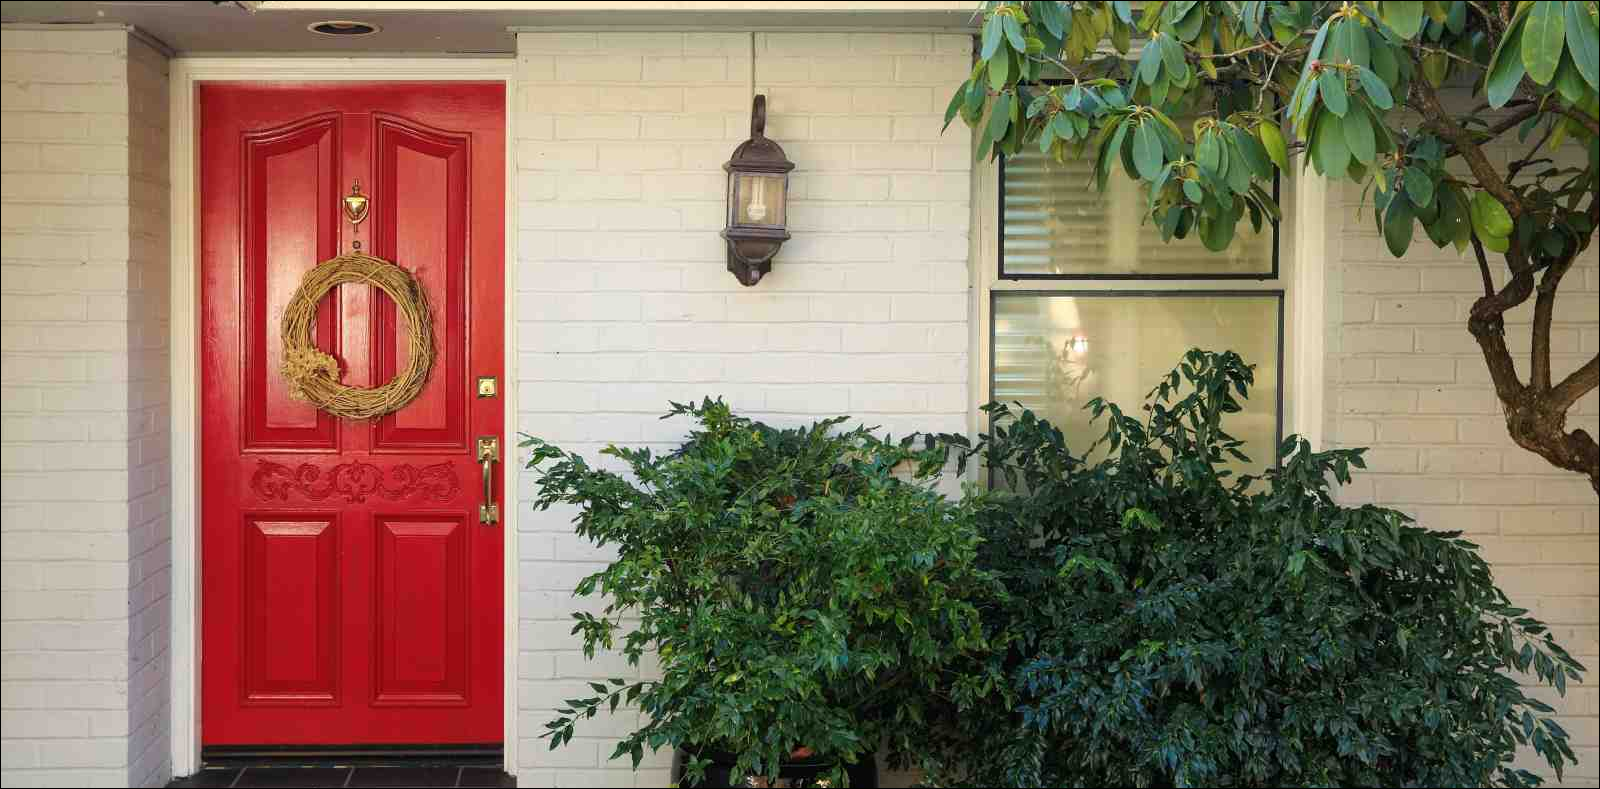 Front porch with white painted brick exterior, red entrance door accented with Door Wreath and finished with pot planter under wall lantern